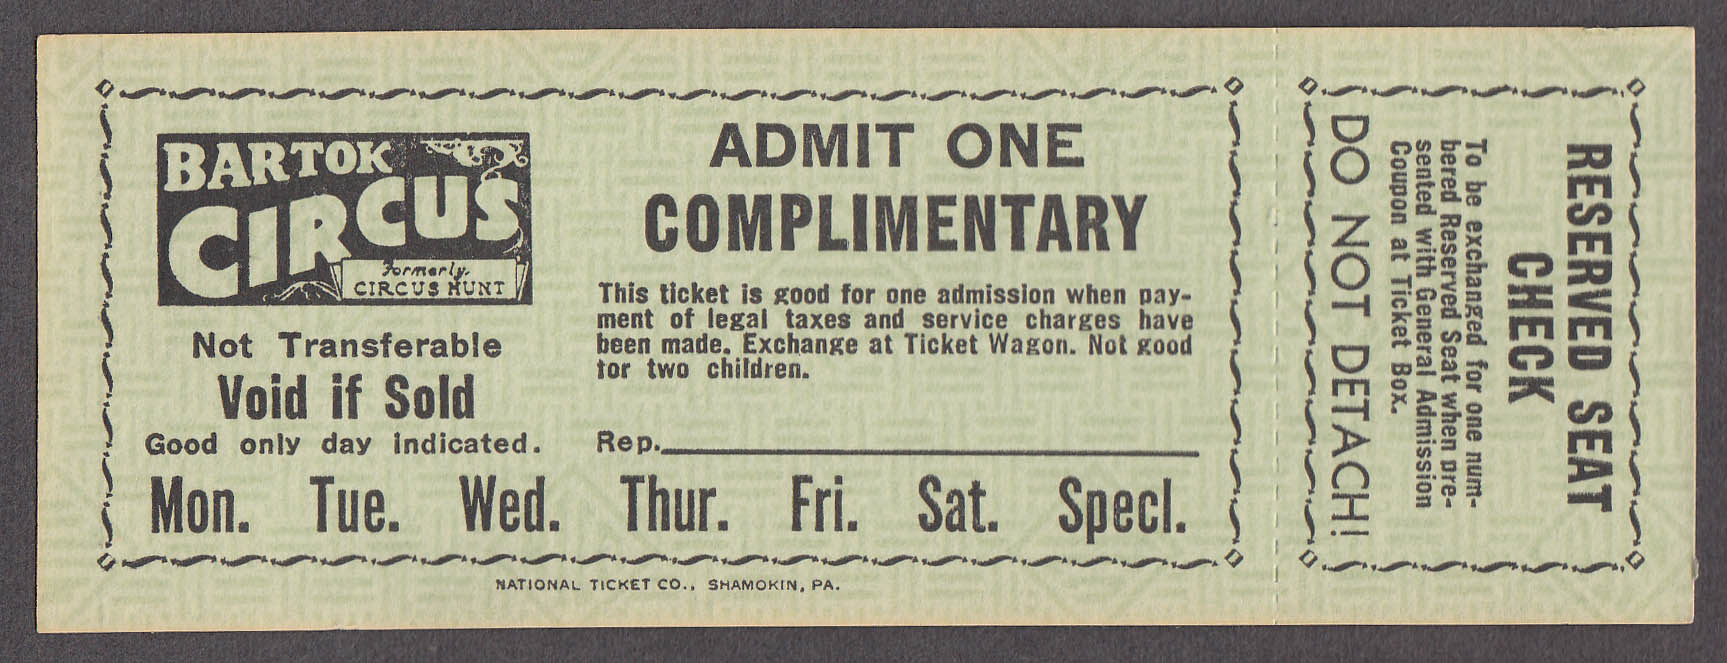 Bartok Circus Complimentary Admit One circus ticket unused undated